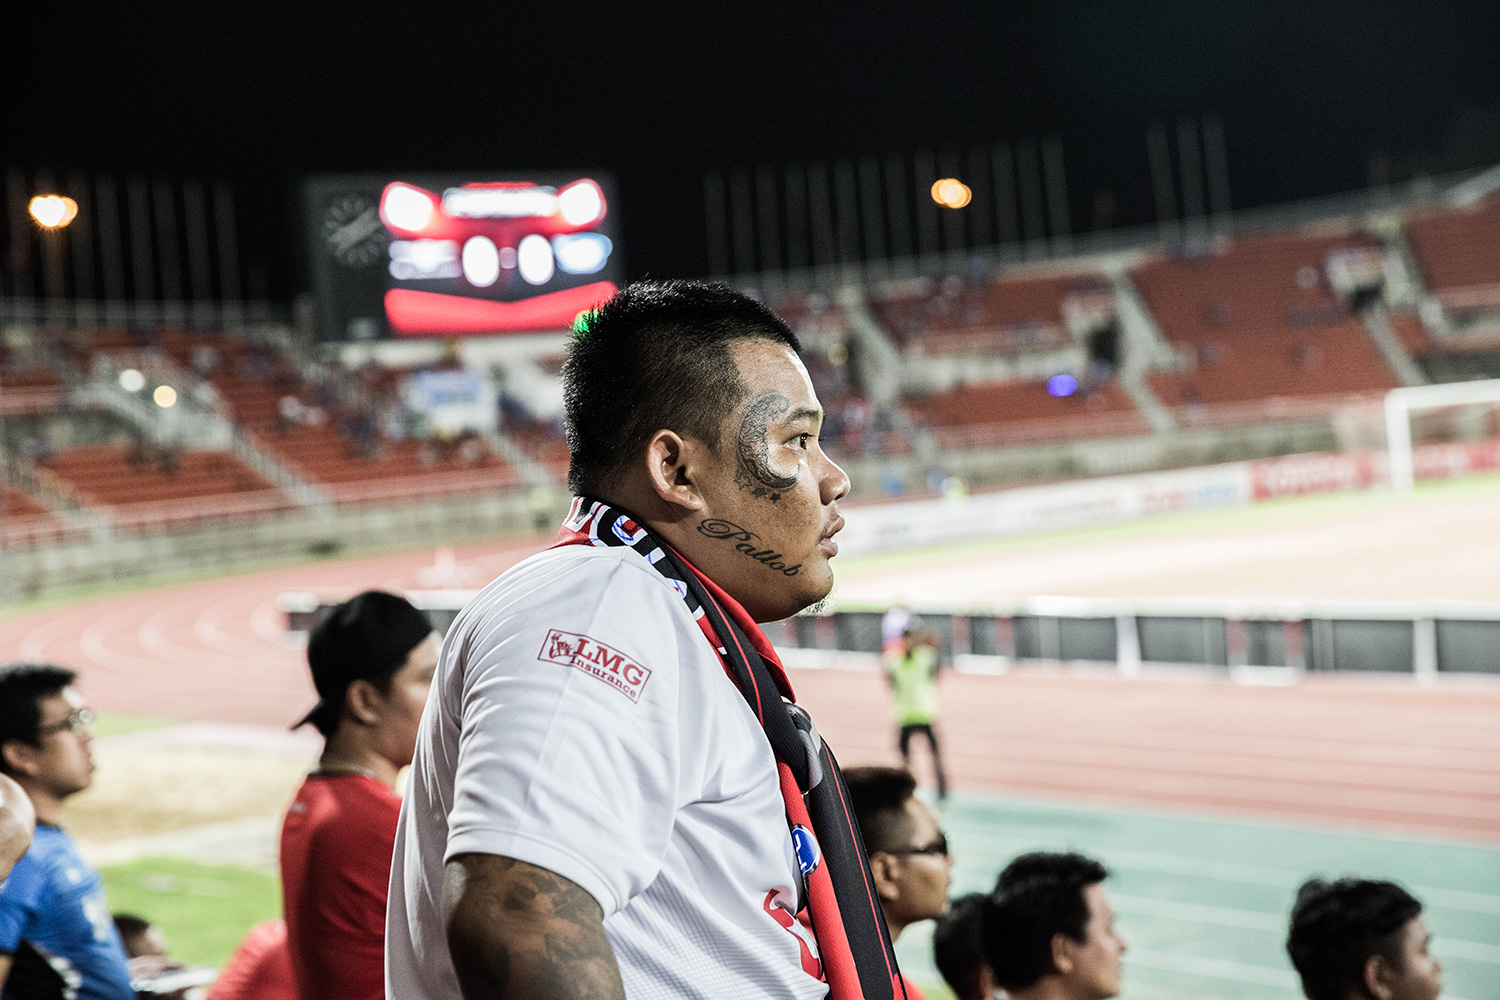 bangkokunited-vs-chonburi-21